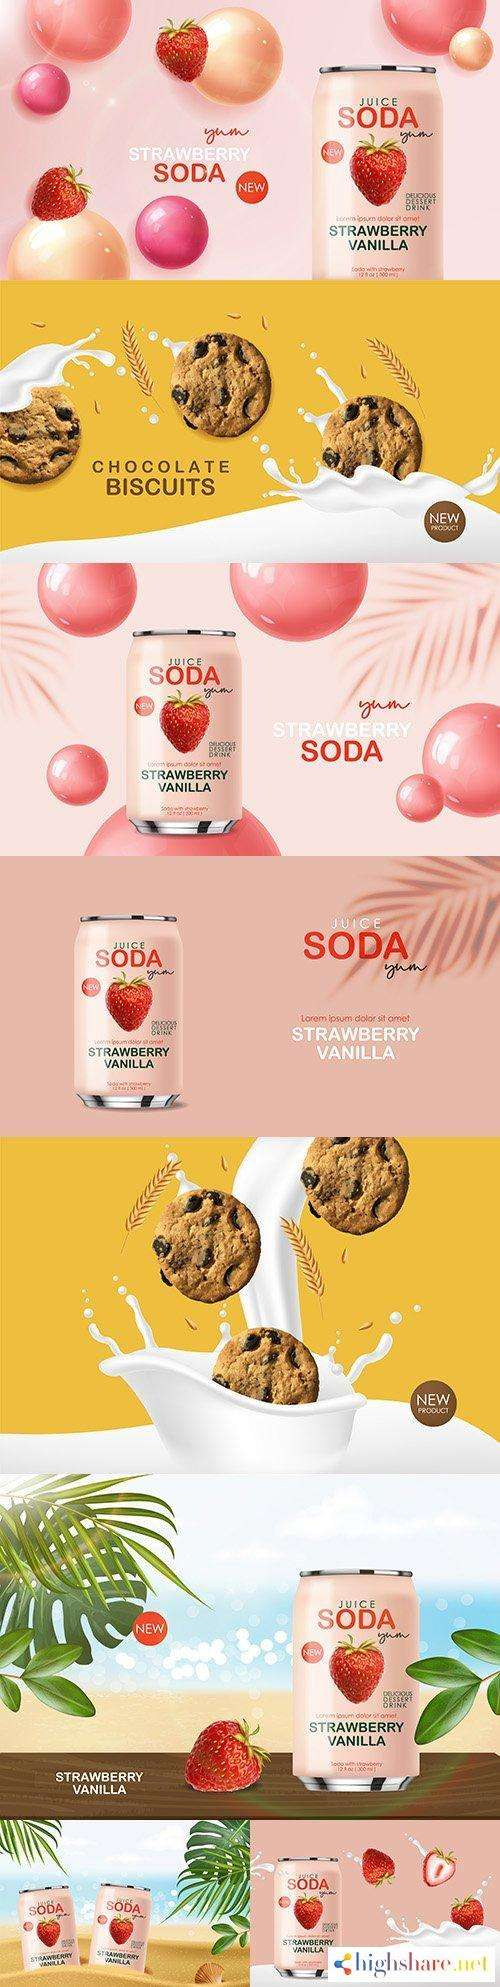 soda drink with fruit and chocolate cookies 3d realistic design 5f4200133c103 - Soda drink with fruit and chocolate cookies 3d realistic design